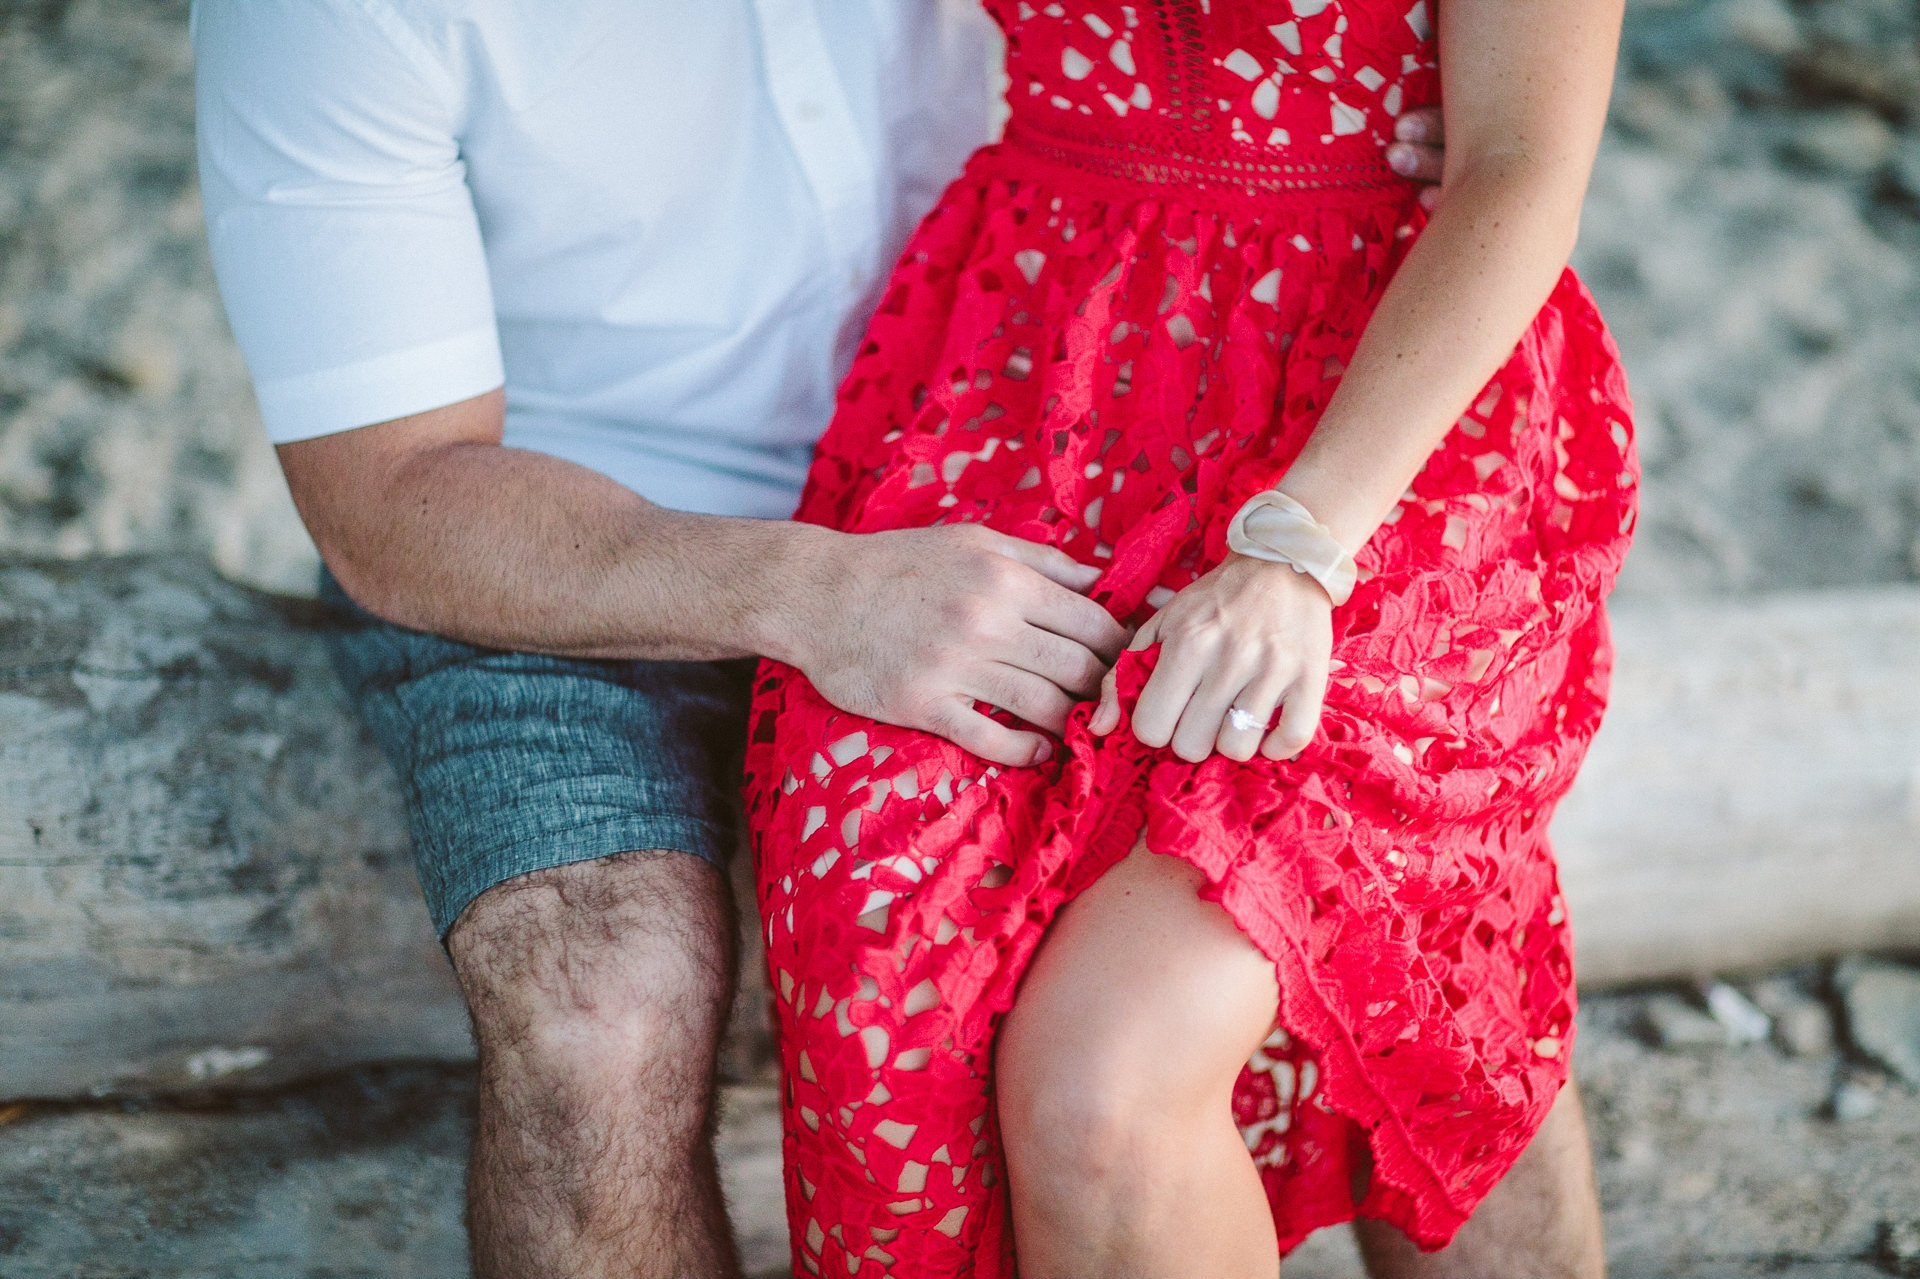 Sara Shookman Angelo DiFranco Engagement photos in cleveland by too much awesomeness photography 43.jpg